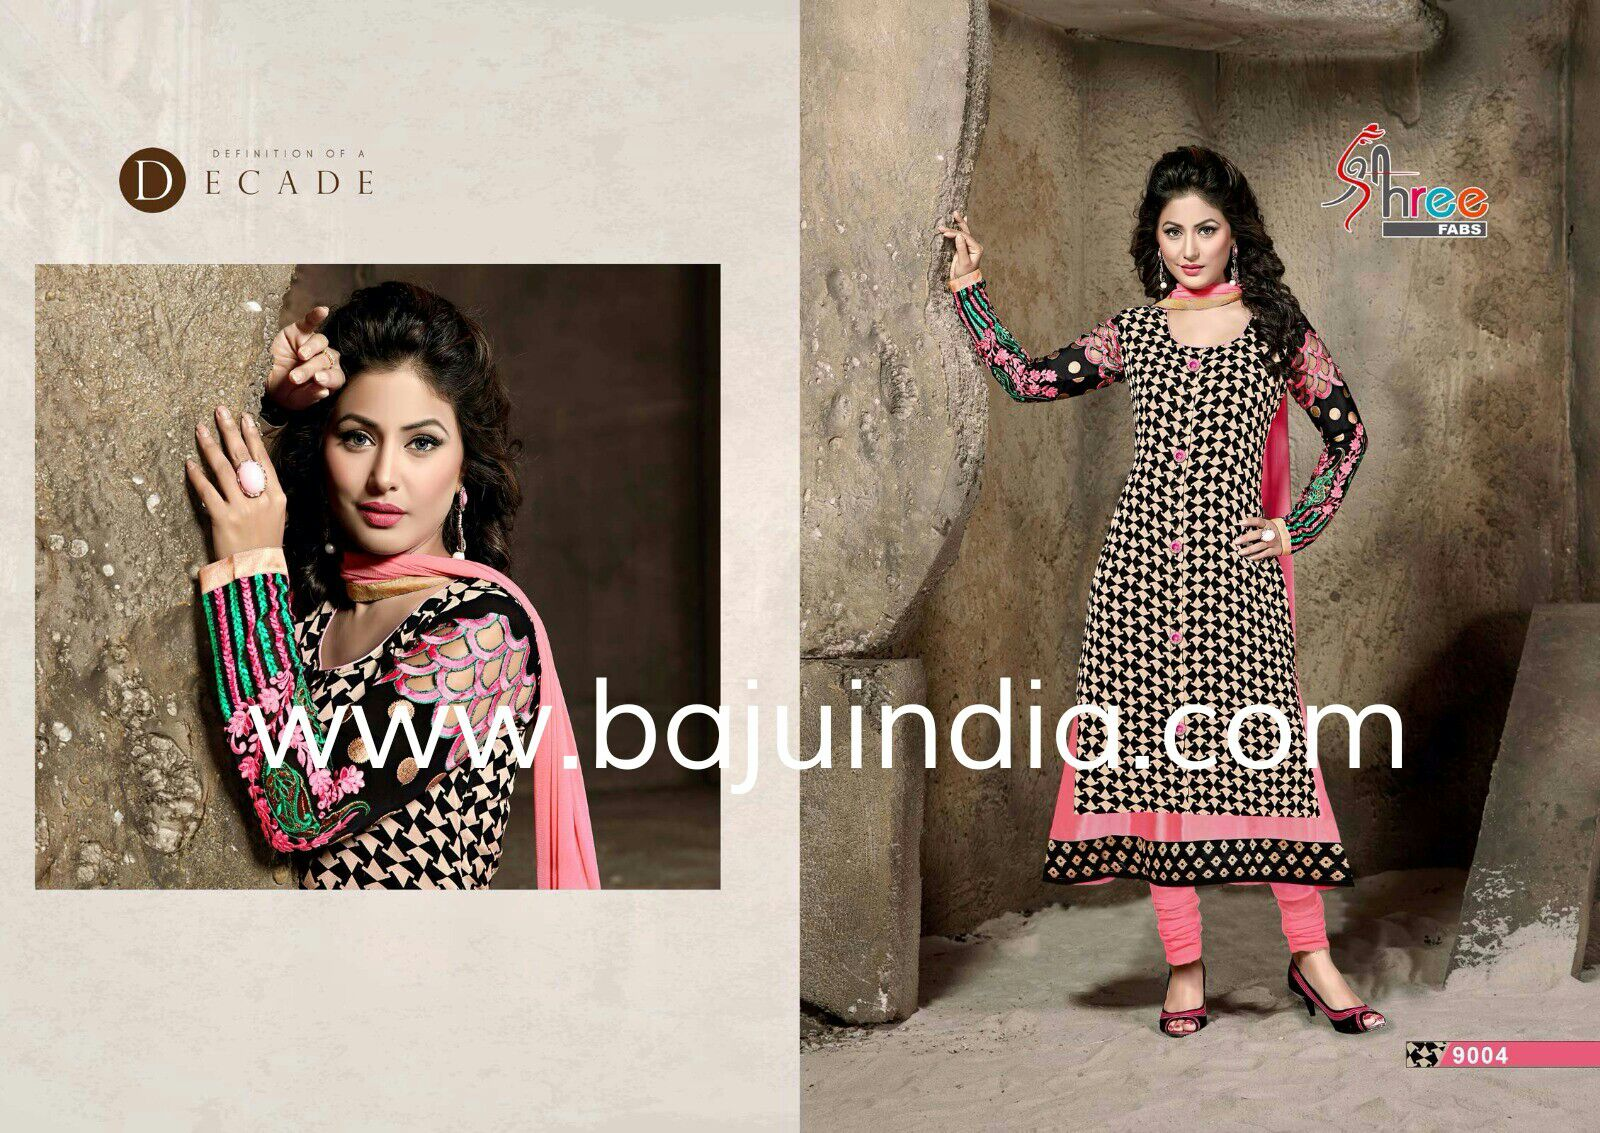 Baju India Muslim - Baju India Modern - Baju Khas India - Baju Adat India - Sari India Terbaru - Sari India Muslim - Baju Kerajaan India - Baju Salwaar India - SHREE-9004